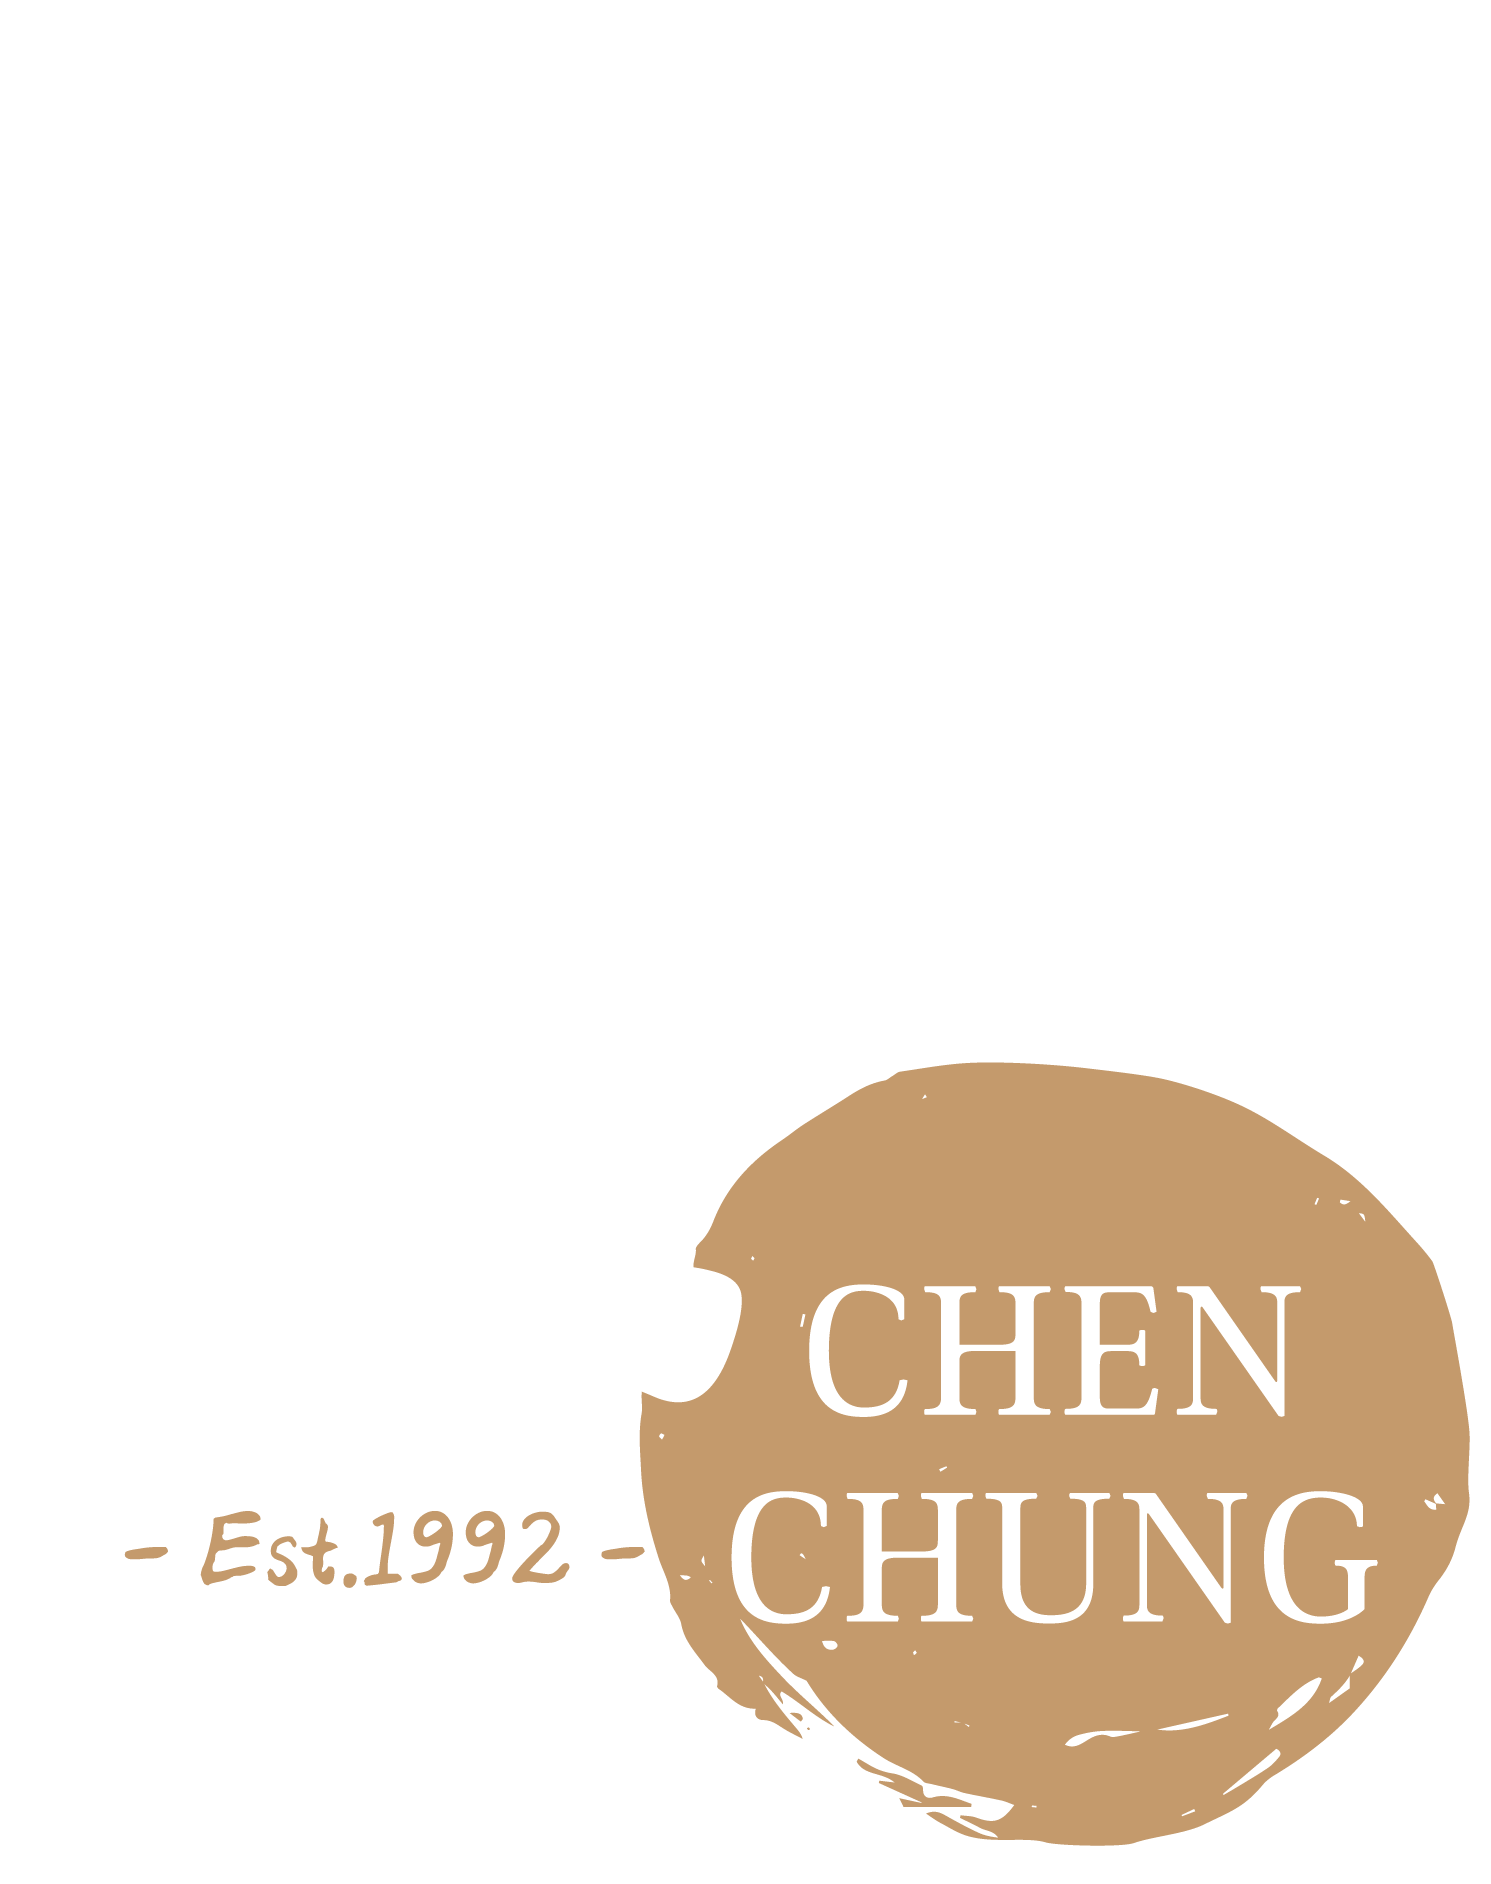 Chen Chung-The Traditional Way, The Best Way